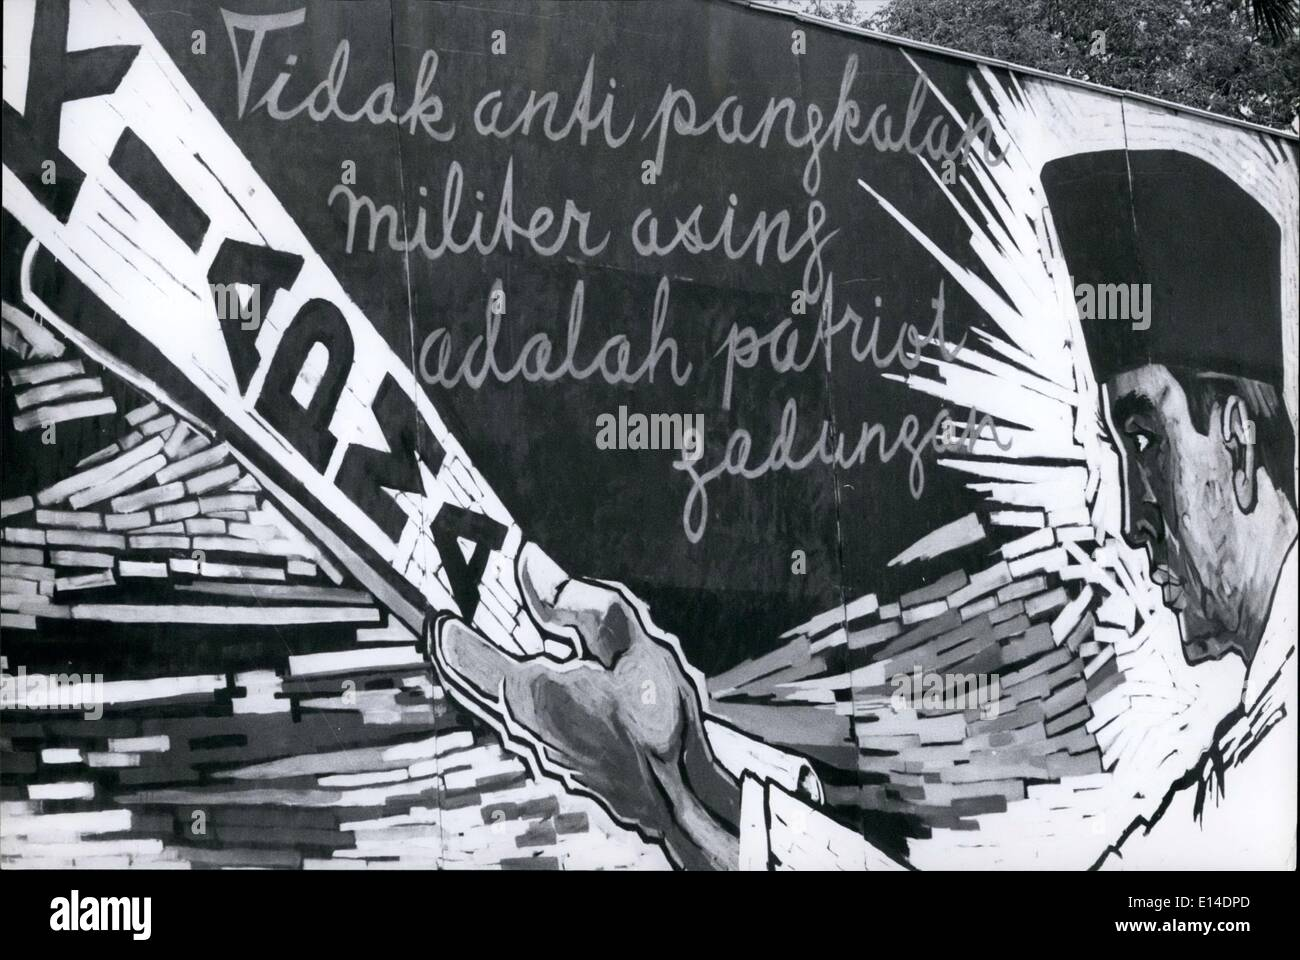 Apr. 18, 2012 - Crush U.S.A.; poster seen in streets of Djakarta, Indonesia of President Sukarno representing the Anti-Foreign Military Conference to be held in Djakarta, October 17-22, 1965. The conference was called to get the USA, Britain and other western so-called imperialist nations to liquidate all their bases in other countries. Credit Carol Goldstein - Stock Image